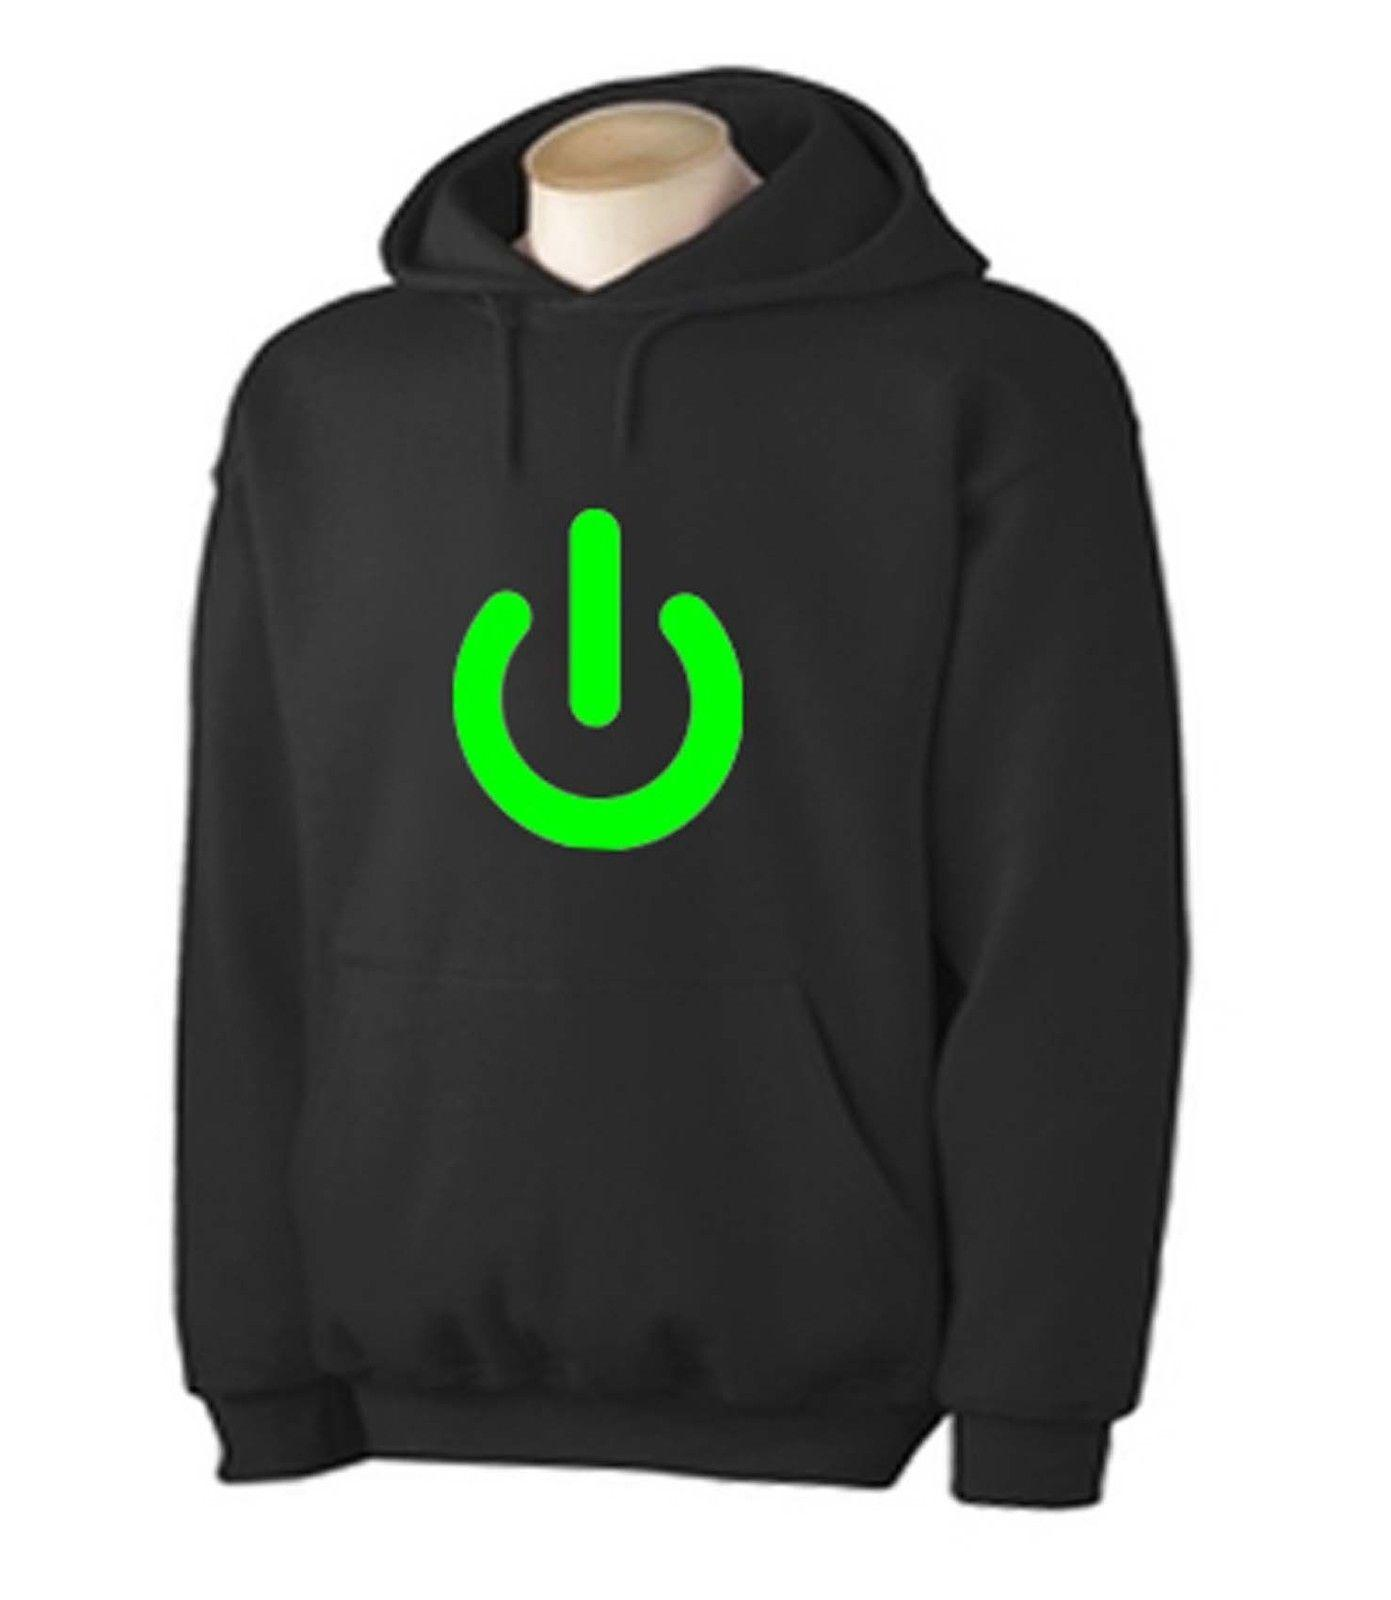 POWER BUTTON HOODIE - Gaming Geek Nerd Computer Game T-Shirt - Sizes S to XXL